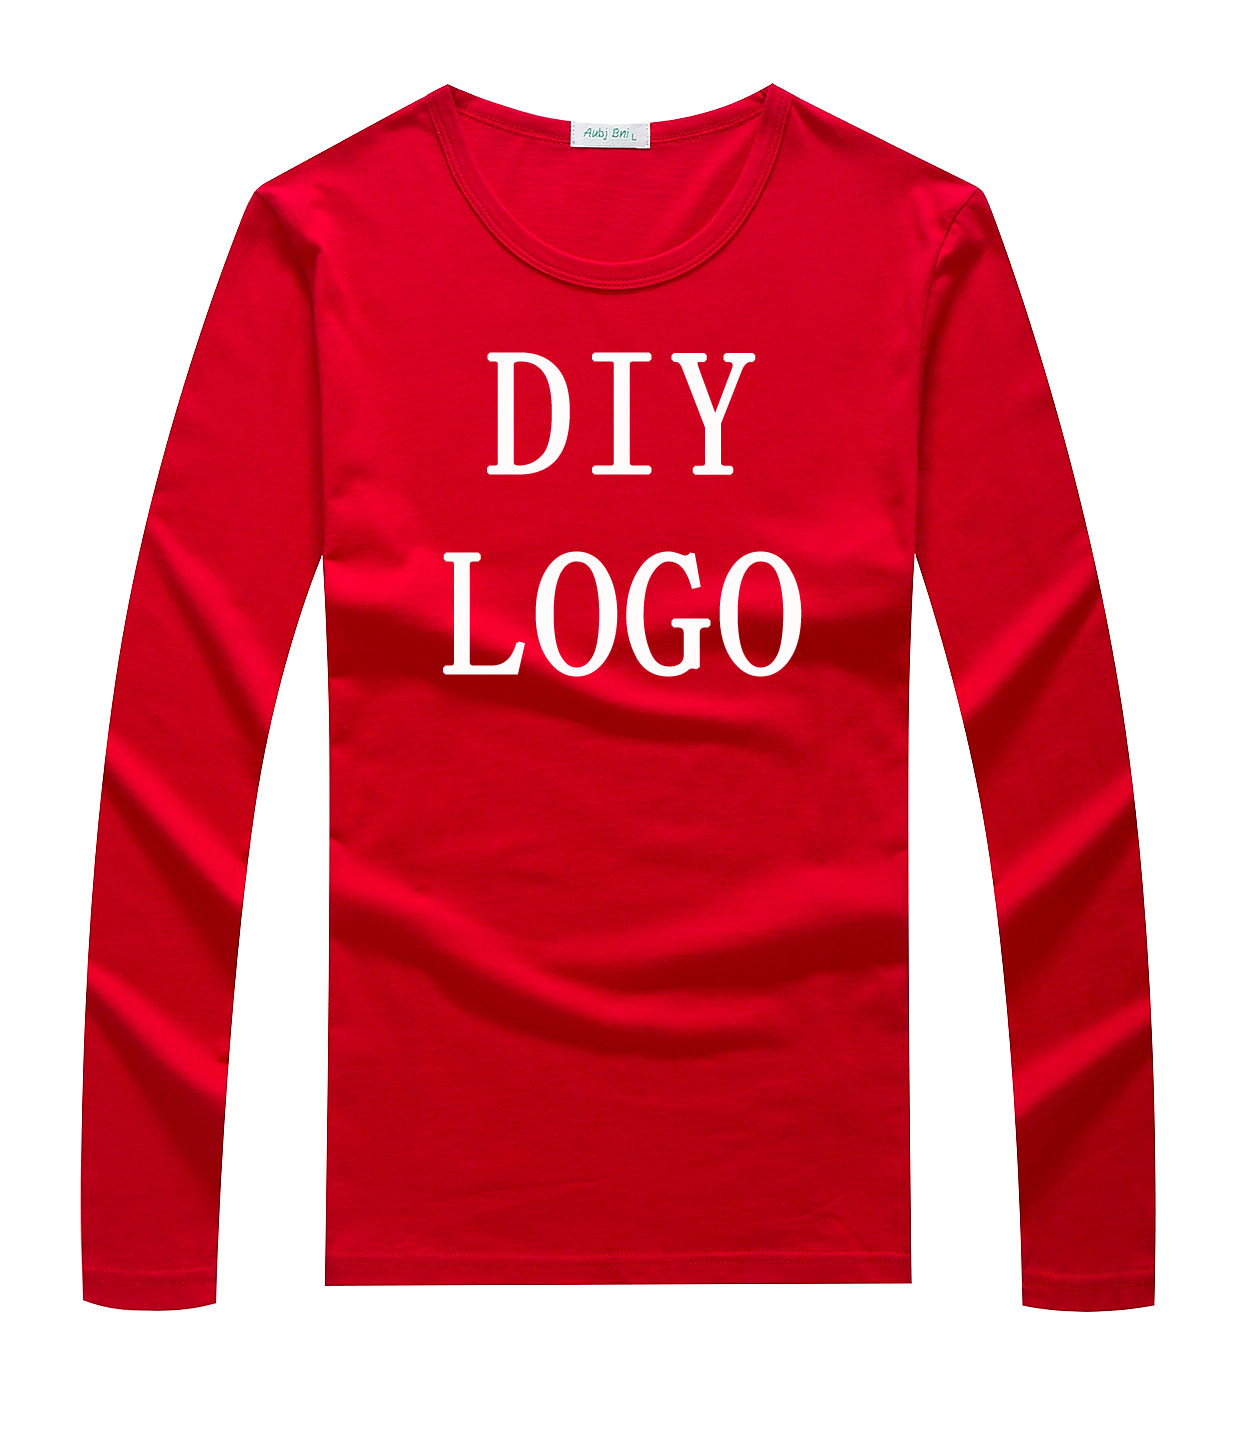 Custom logo long sleeve shirt plain LOGO DIY tshirt customized pattern print embroidery design your owner t-shirt top tee shirts(China (Mainland))